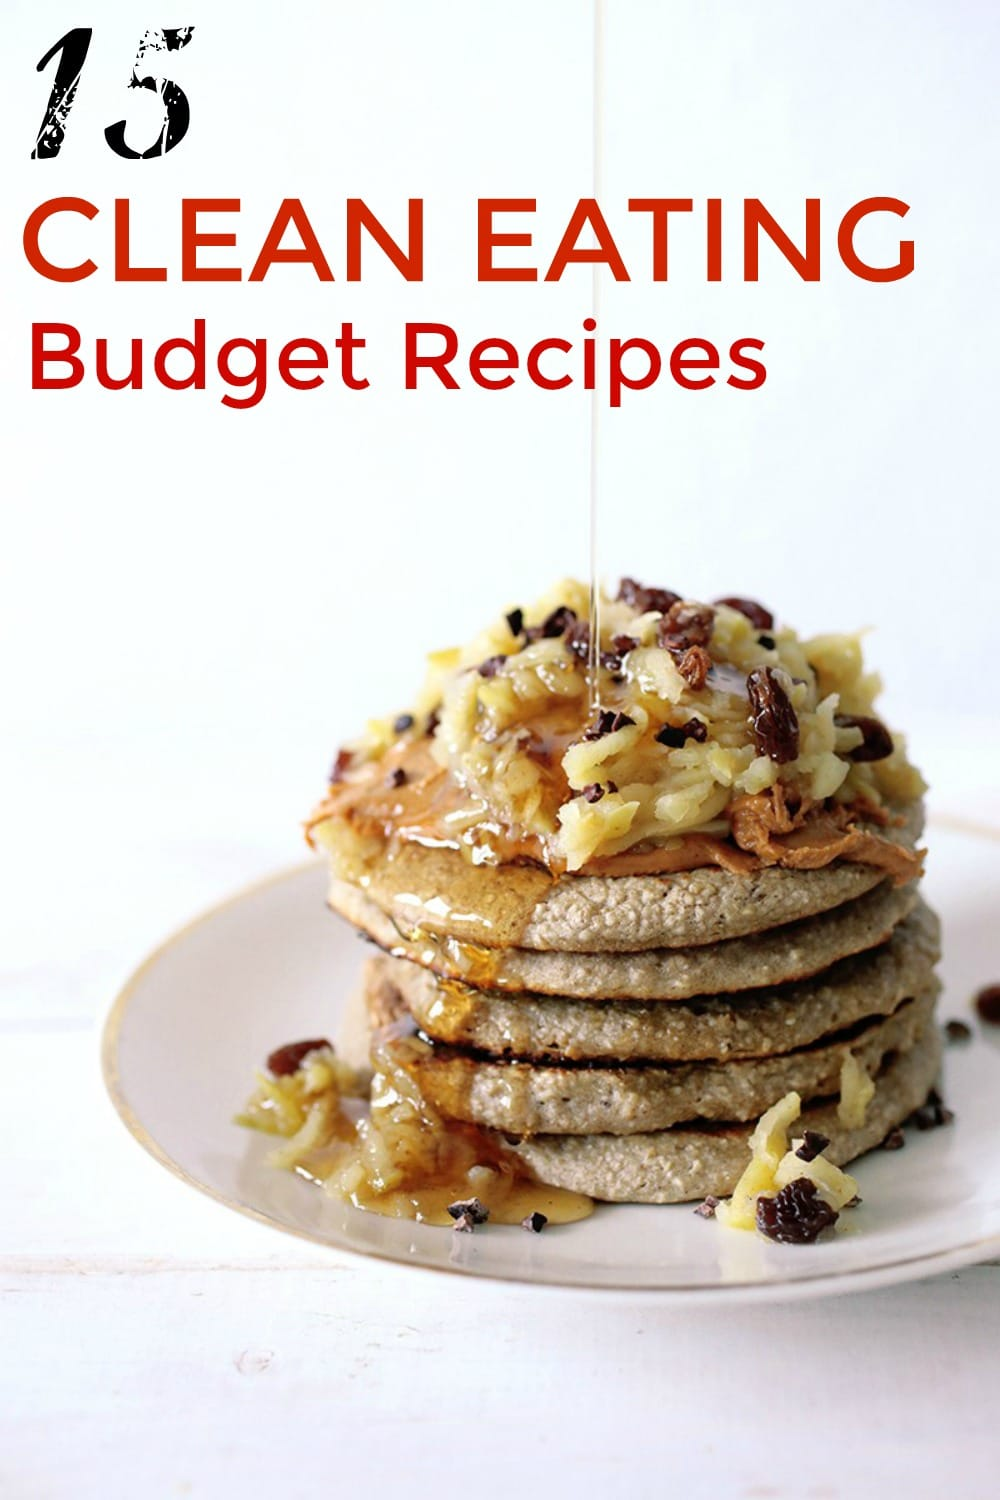 I hate it when I find a really tasty looking recipe only to discover that it would be cheaper to go to a restaurant than make the dish! I love these budget friendly clean eating recipes.